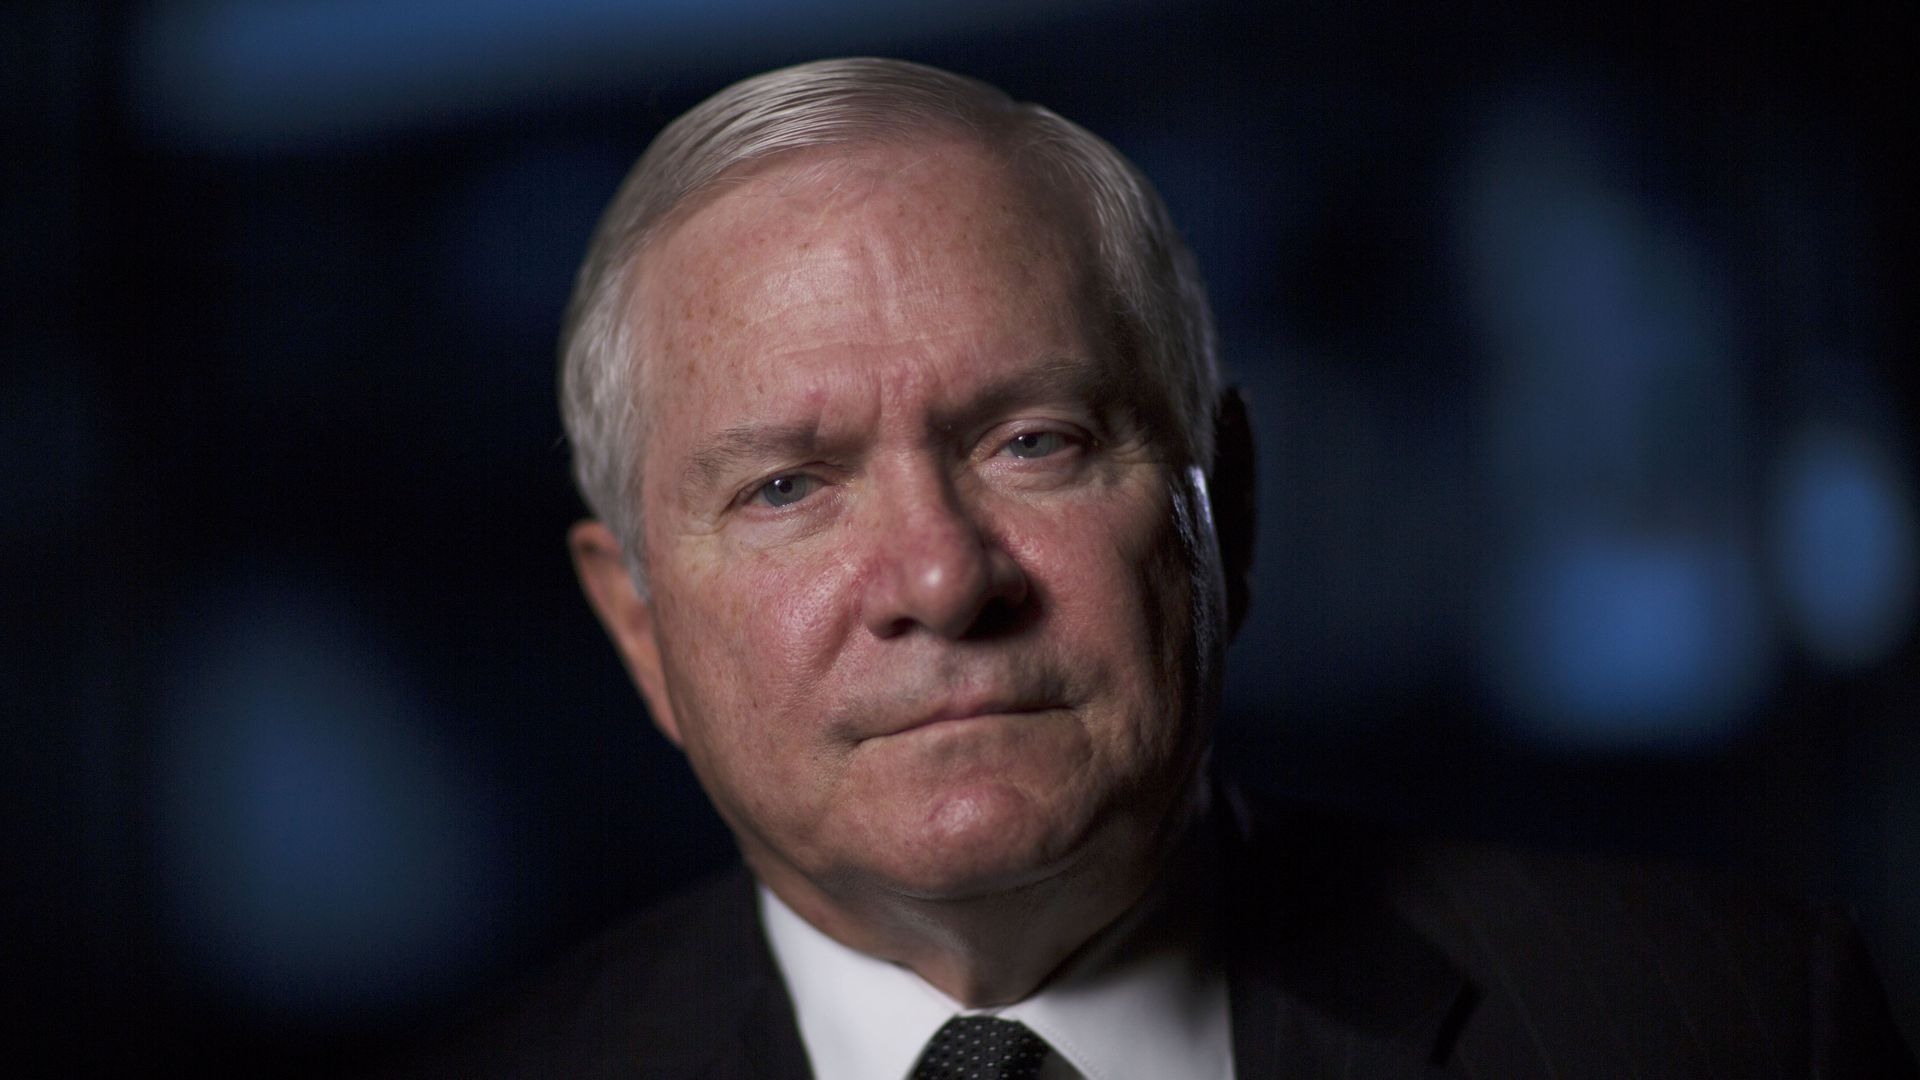 Robert Gates looks at camera sternly